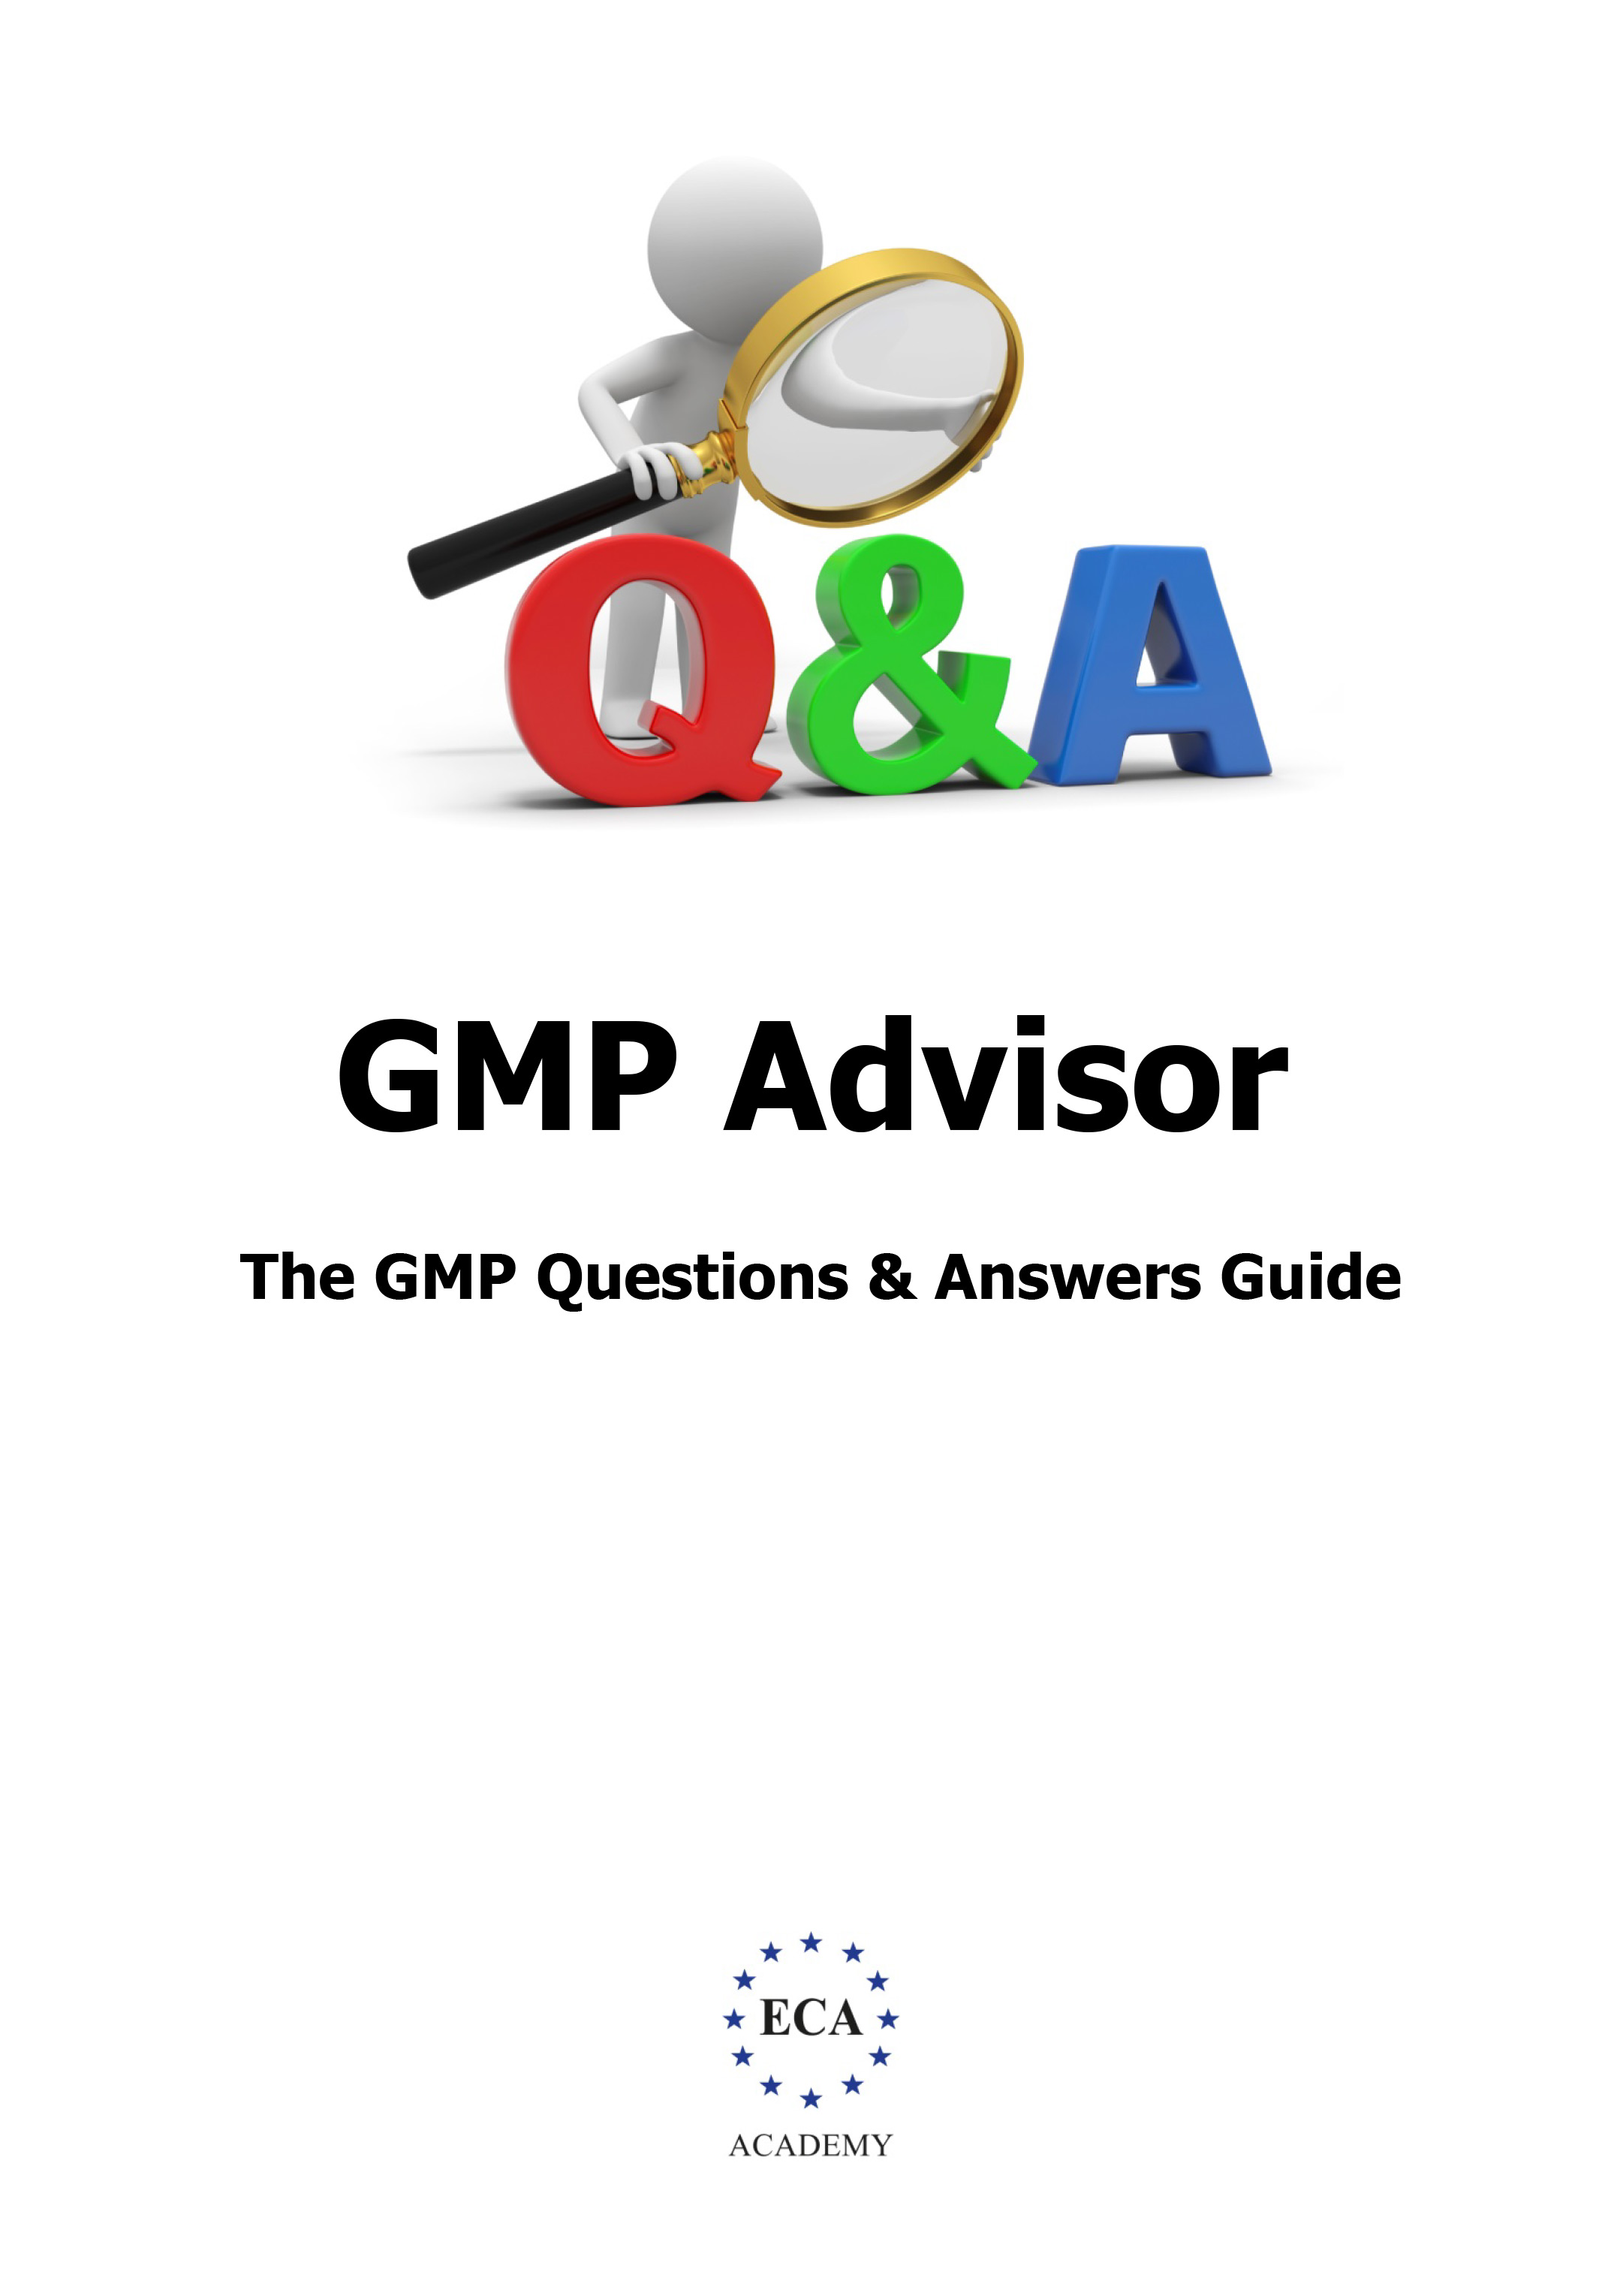 gmp question and answer guide eca academy the document we now offer is intended to provide a single source of information we have summarized gmp questions and answers